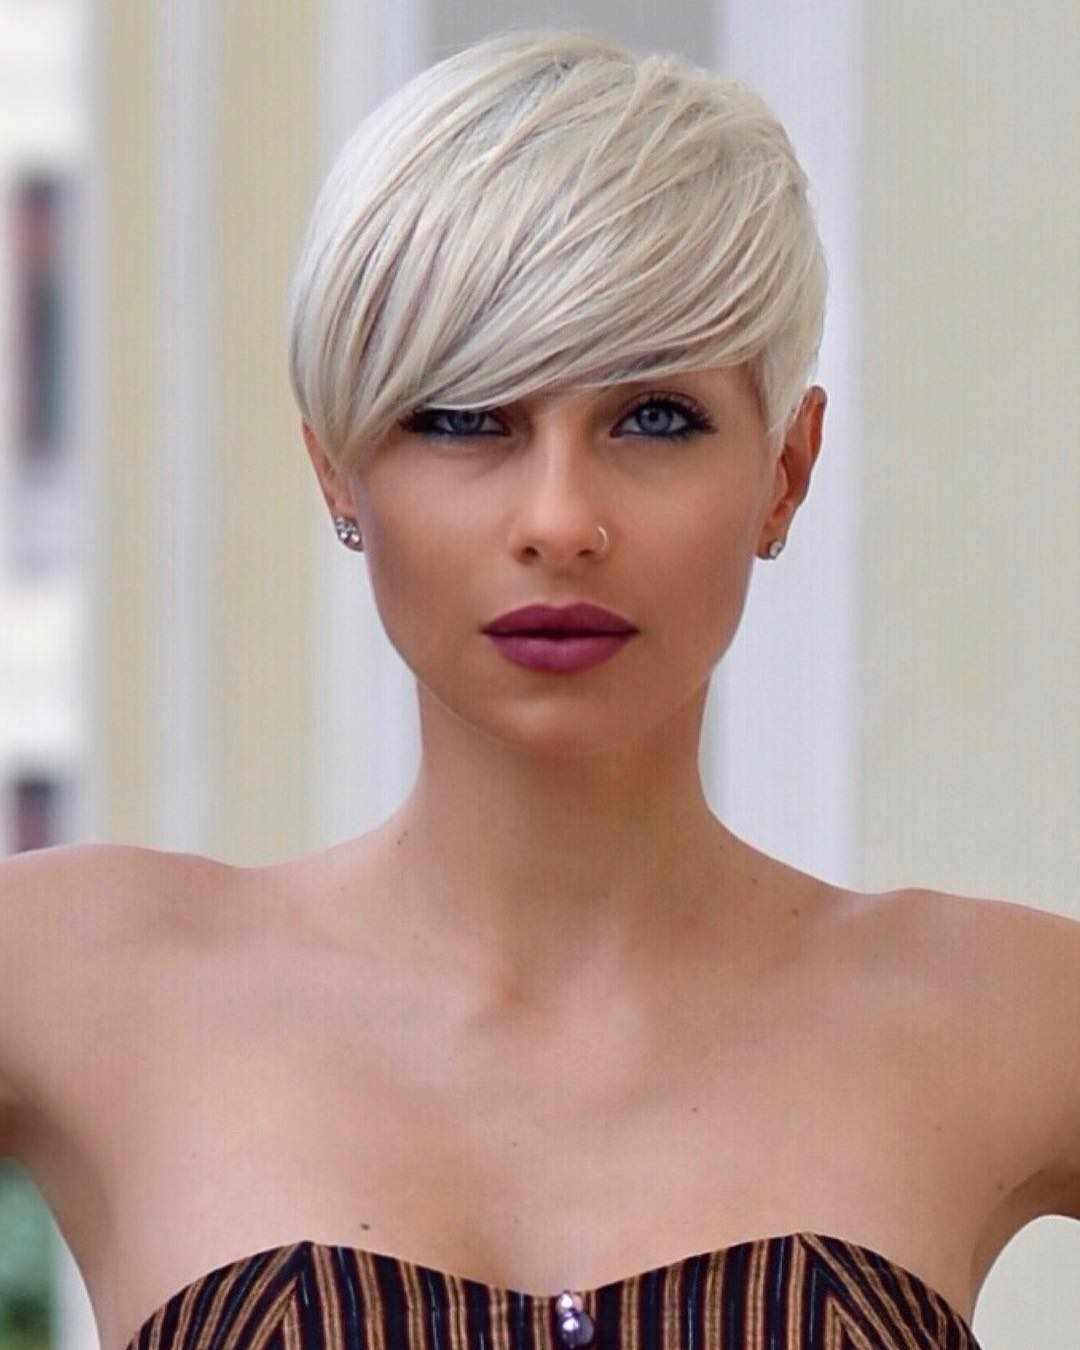 The Best Hot Short Hairstyles For Women In 2019 » Short Hairstyles Pictures